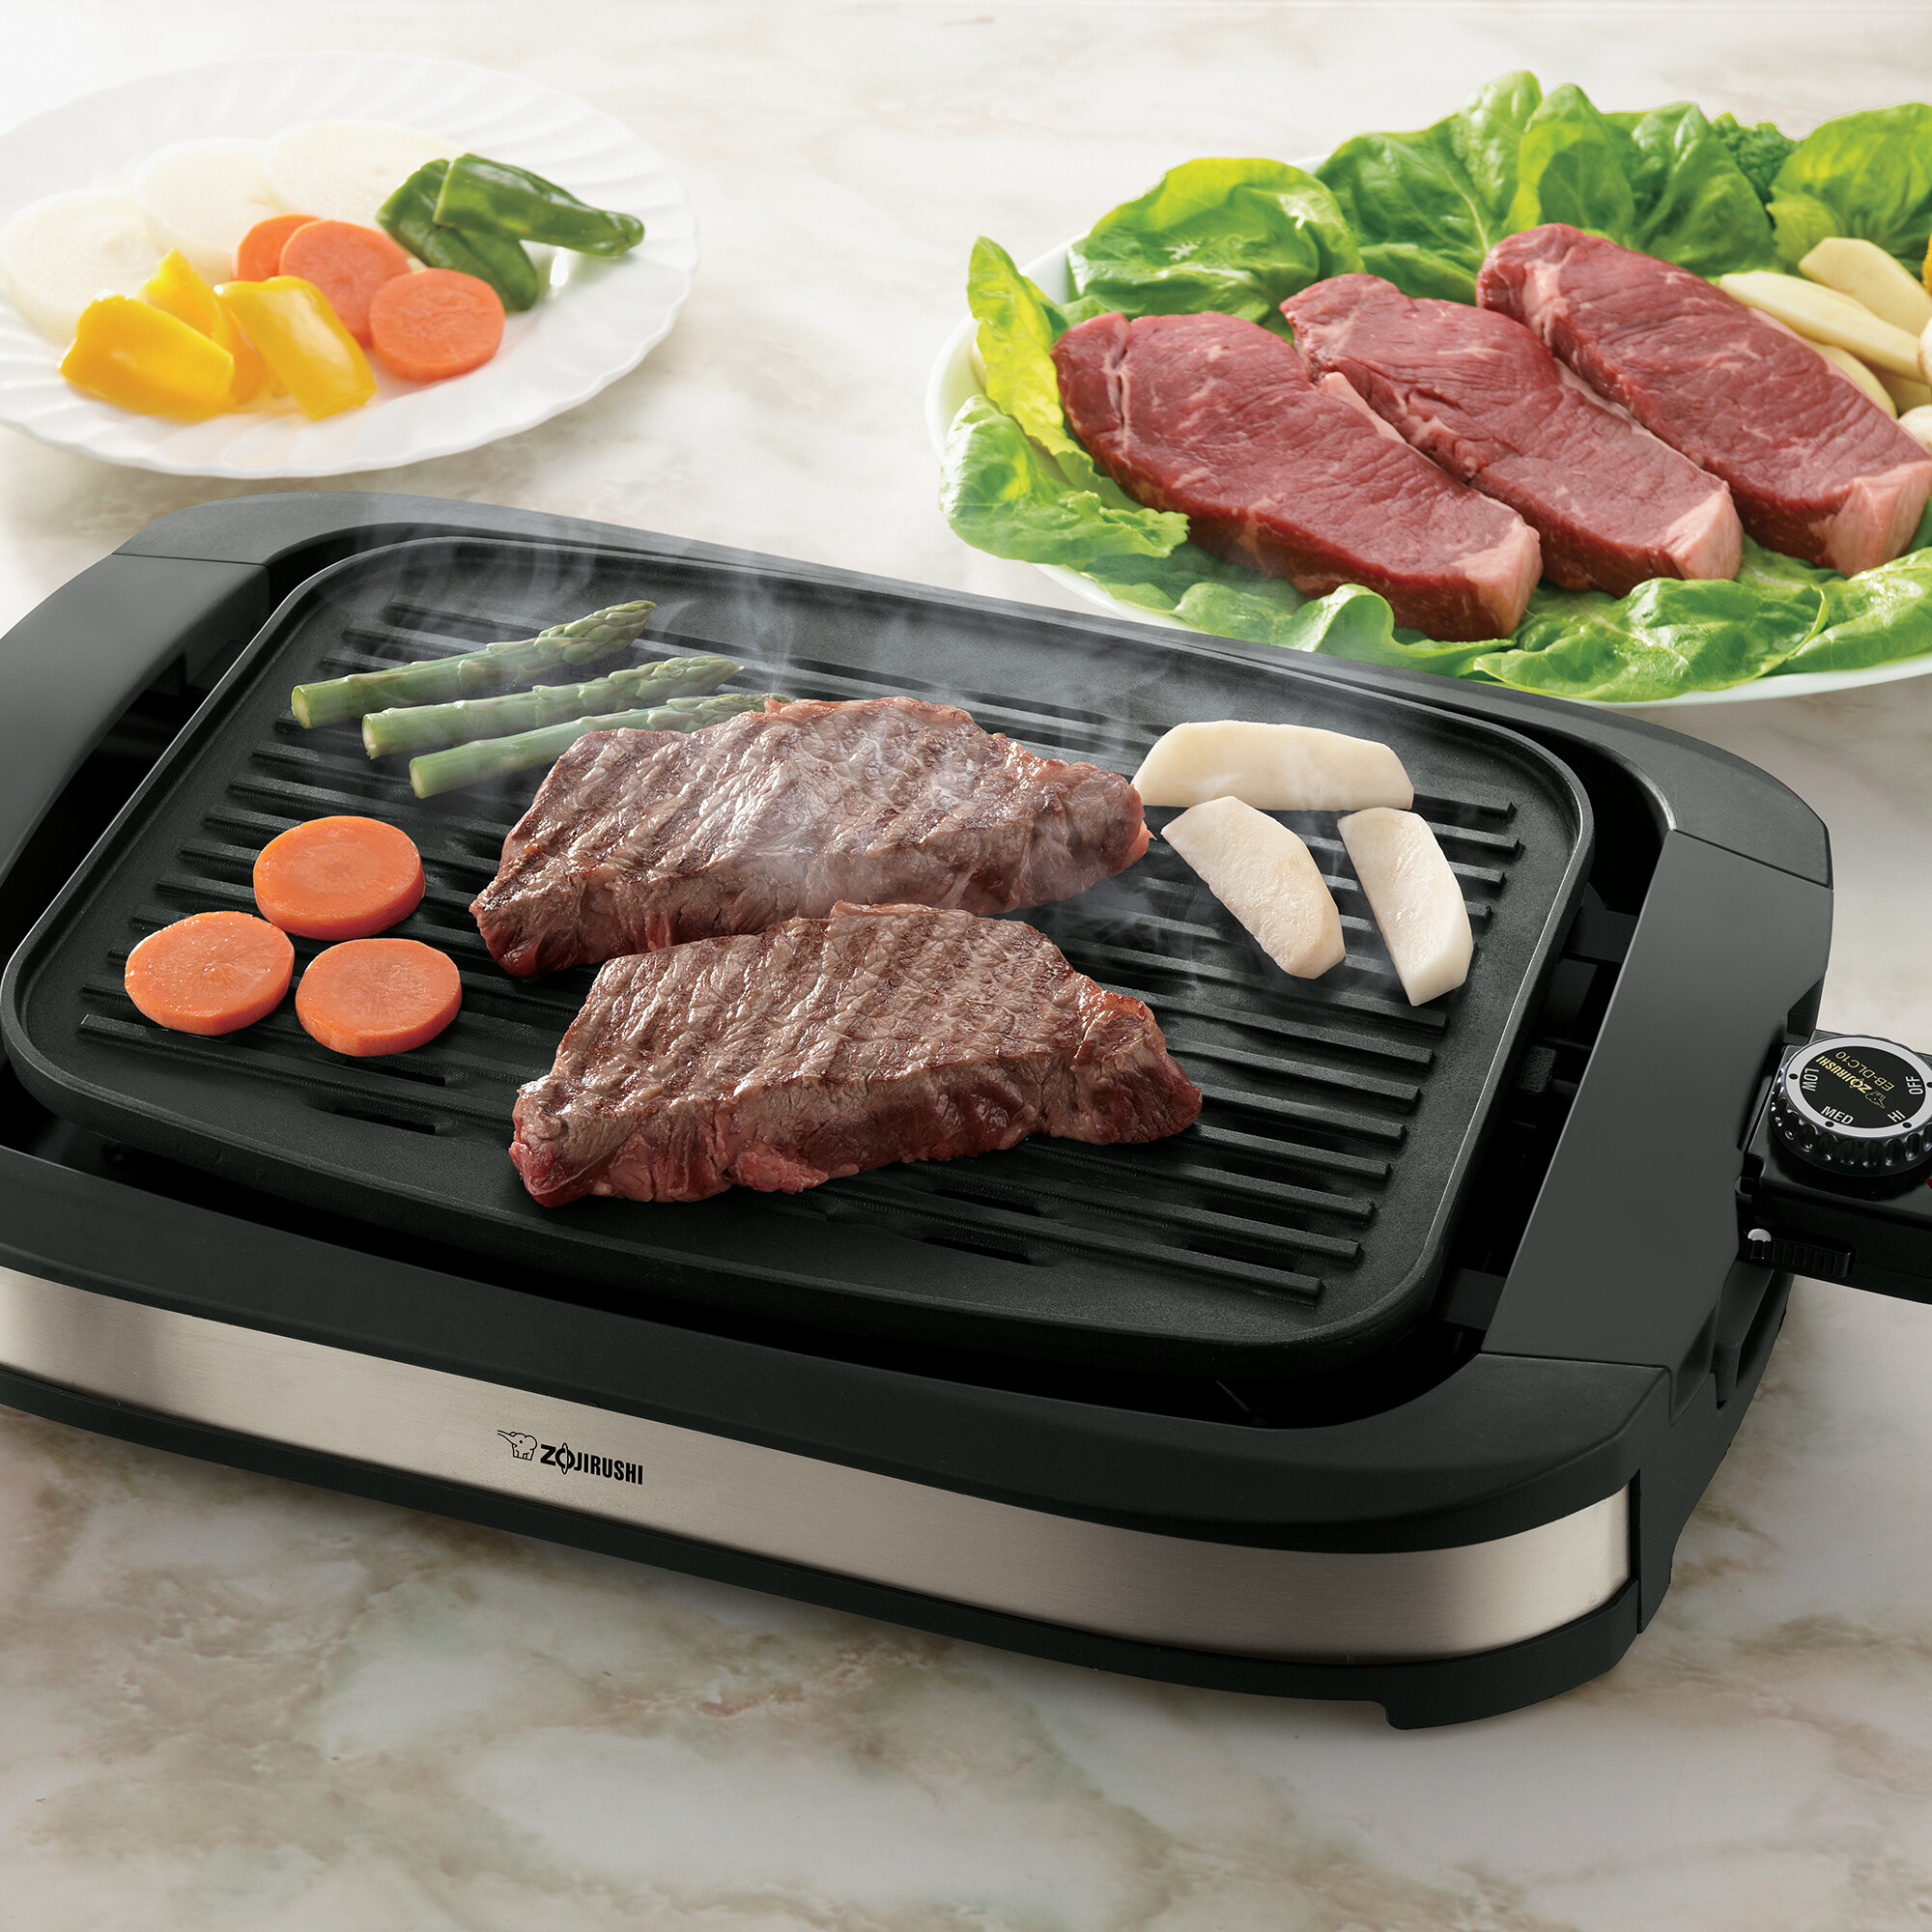 Zojirushi EB-DLC10XT Indoor Electric Grill, Stainless Black